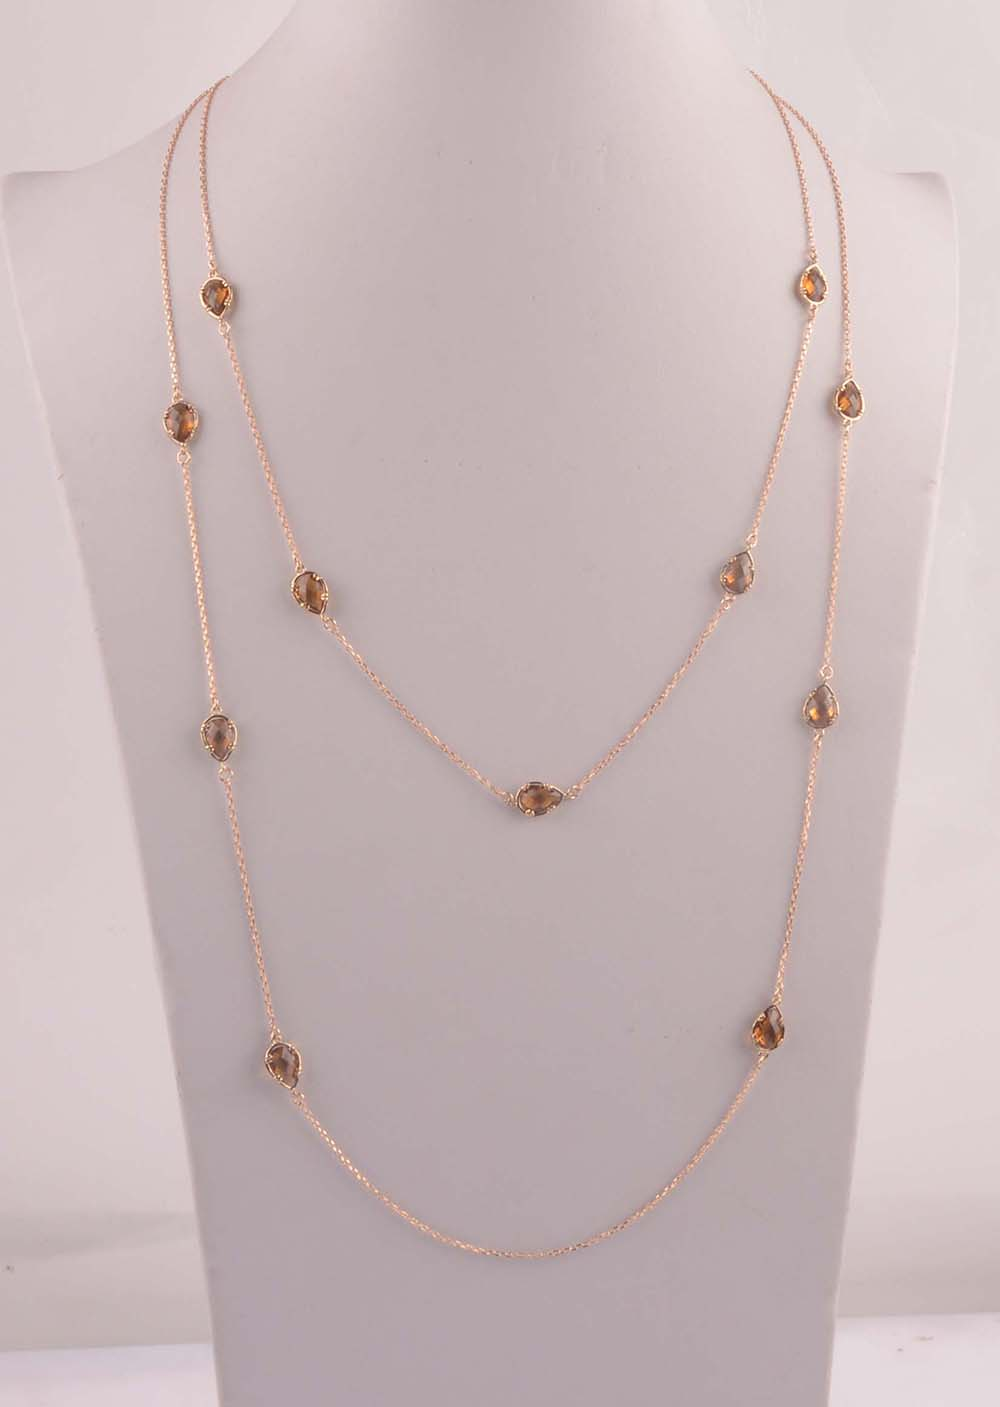 907551 Lady Long Necklace